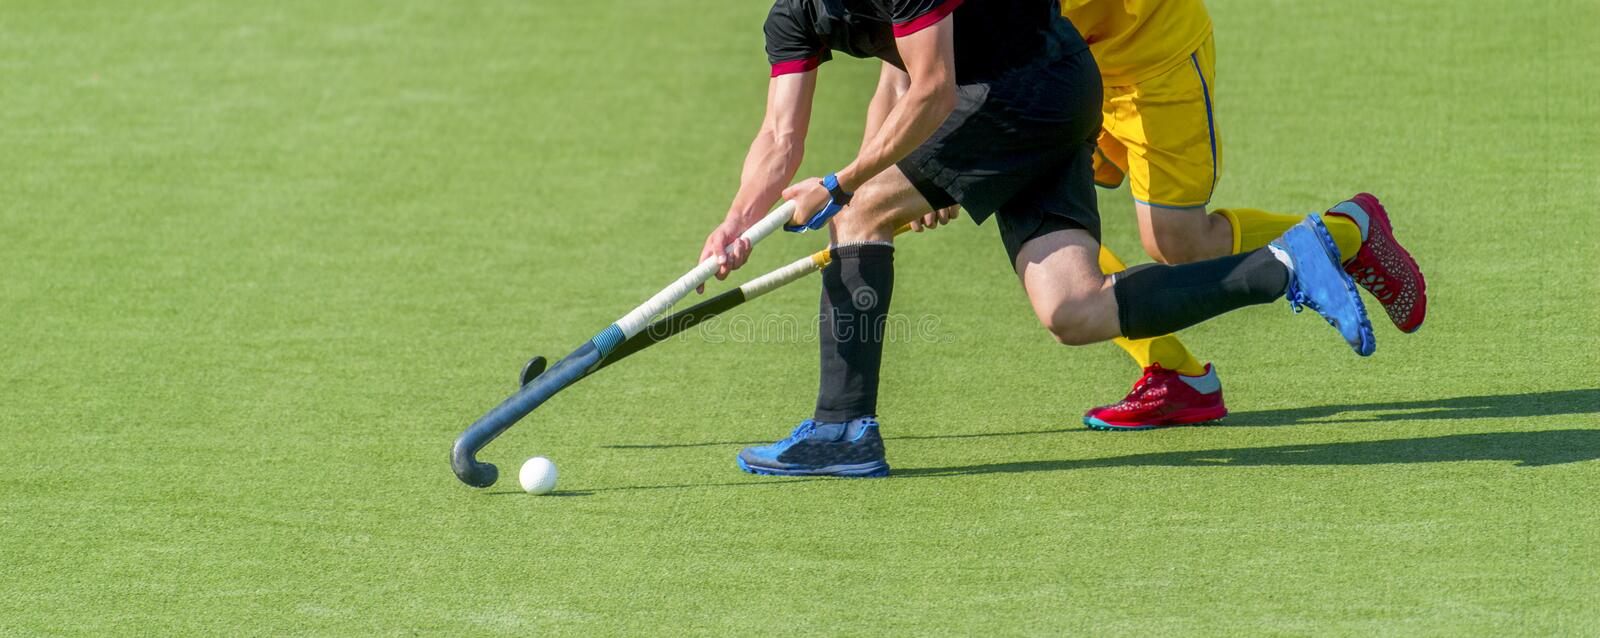 Two field hockey player, fighting for the ball on the midfield during an intense match on artificial grass.  royalty free stock images